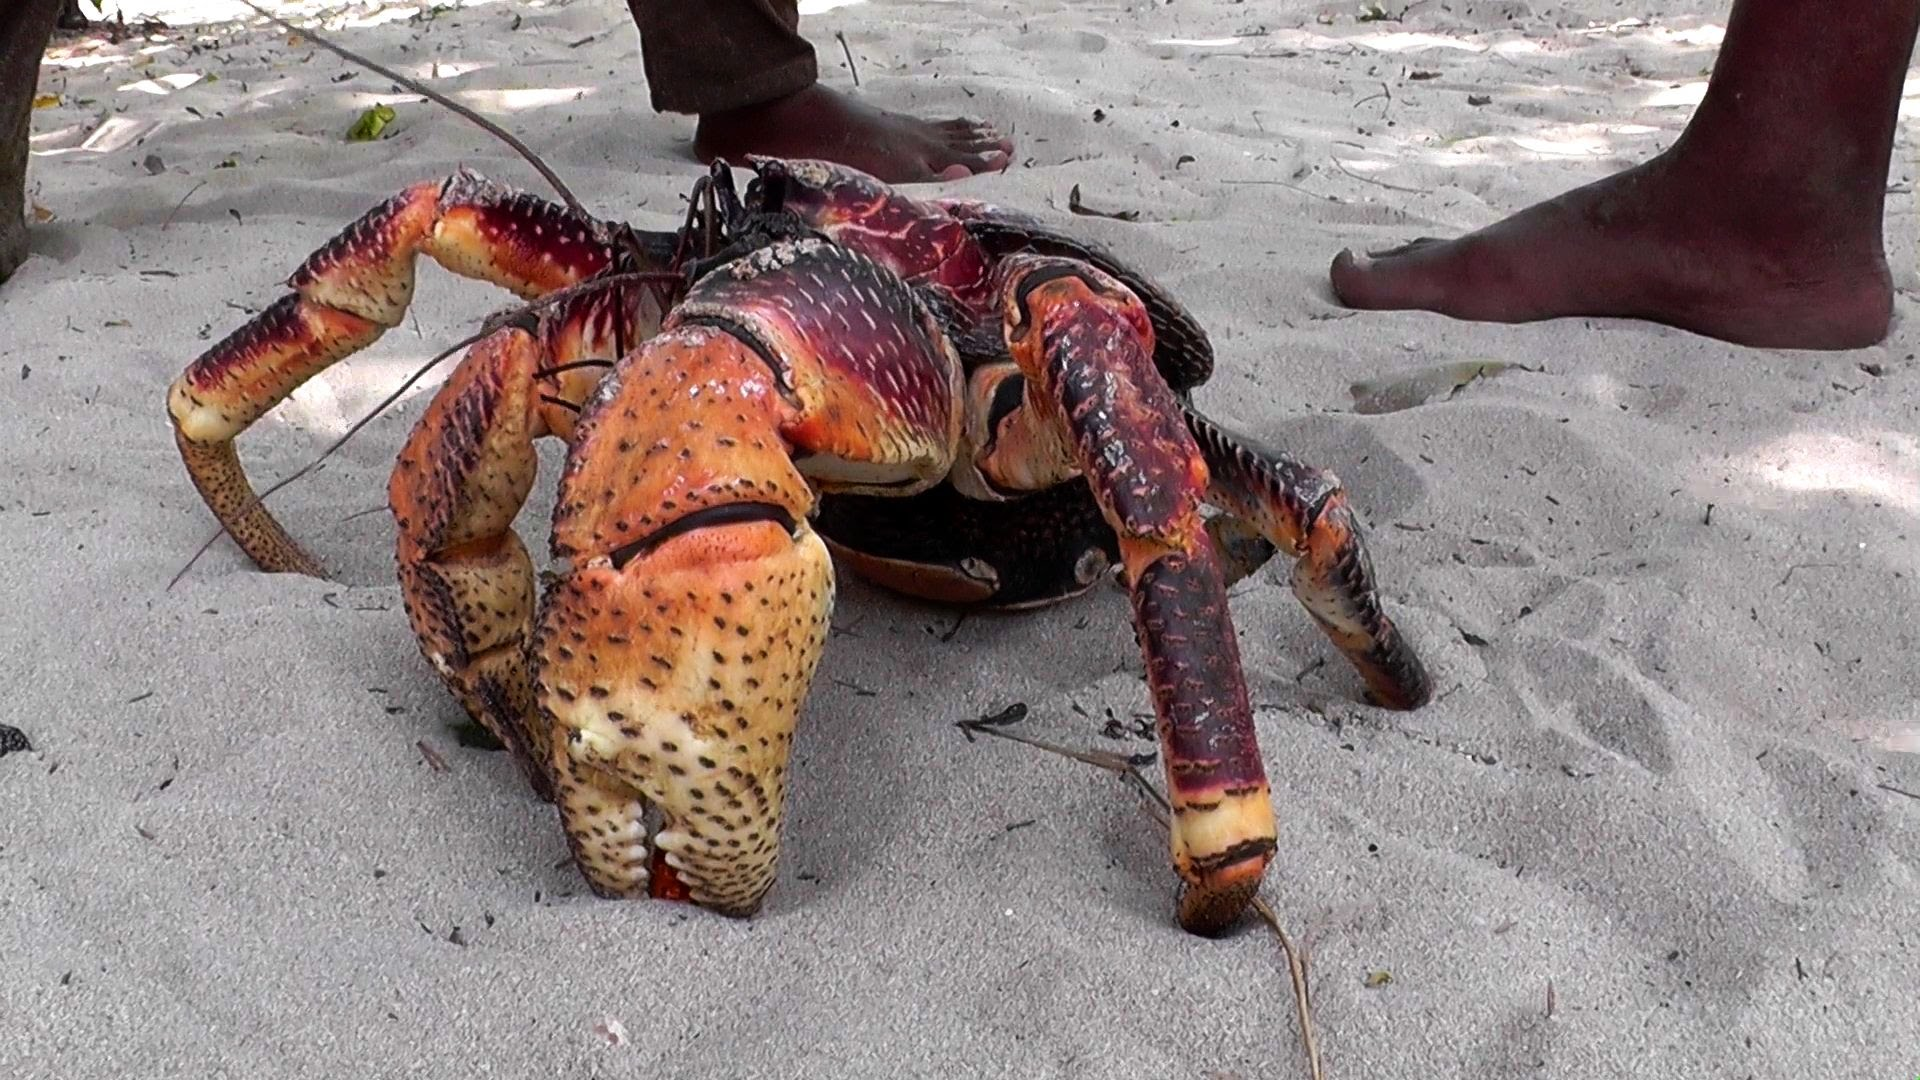 The coconut crab has an incredibly powerful claw.